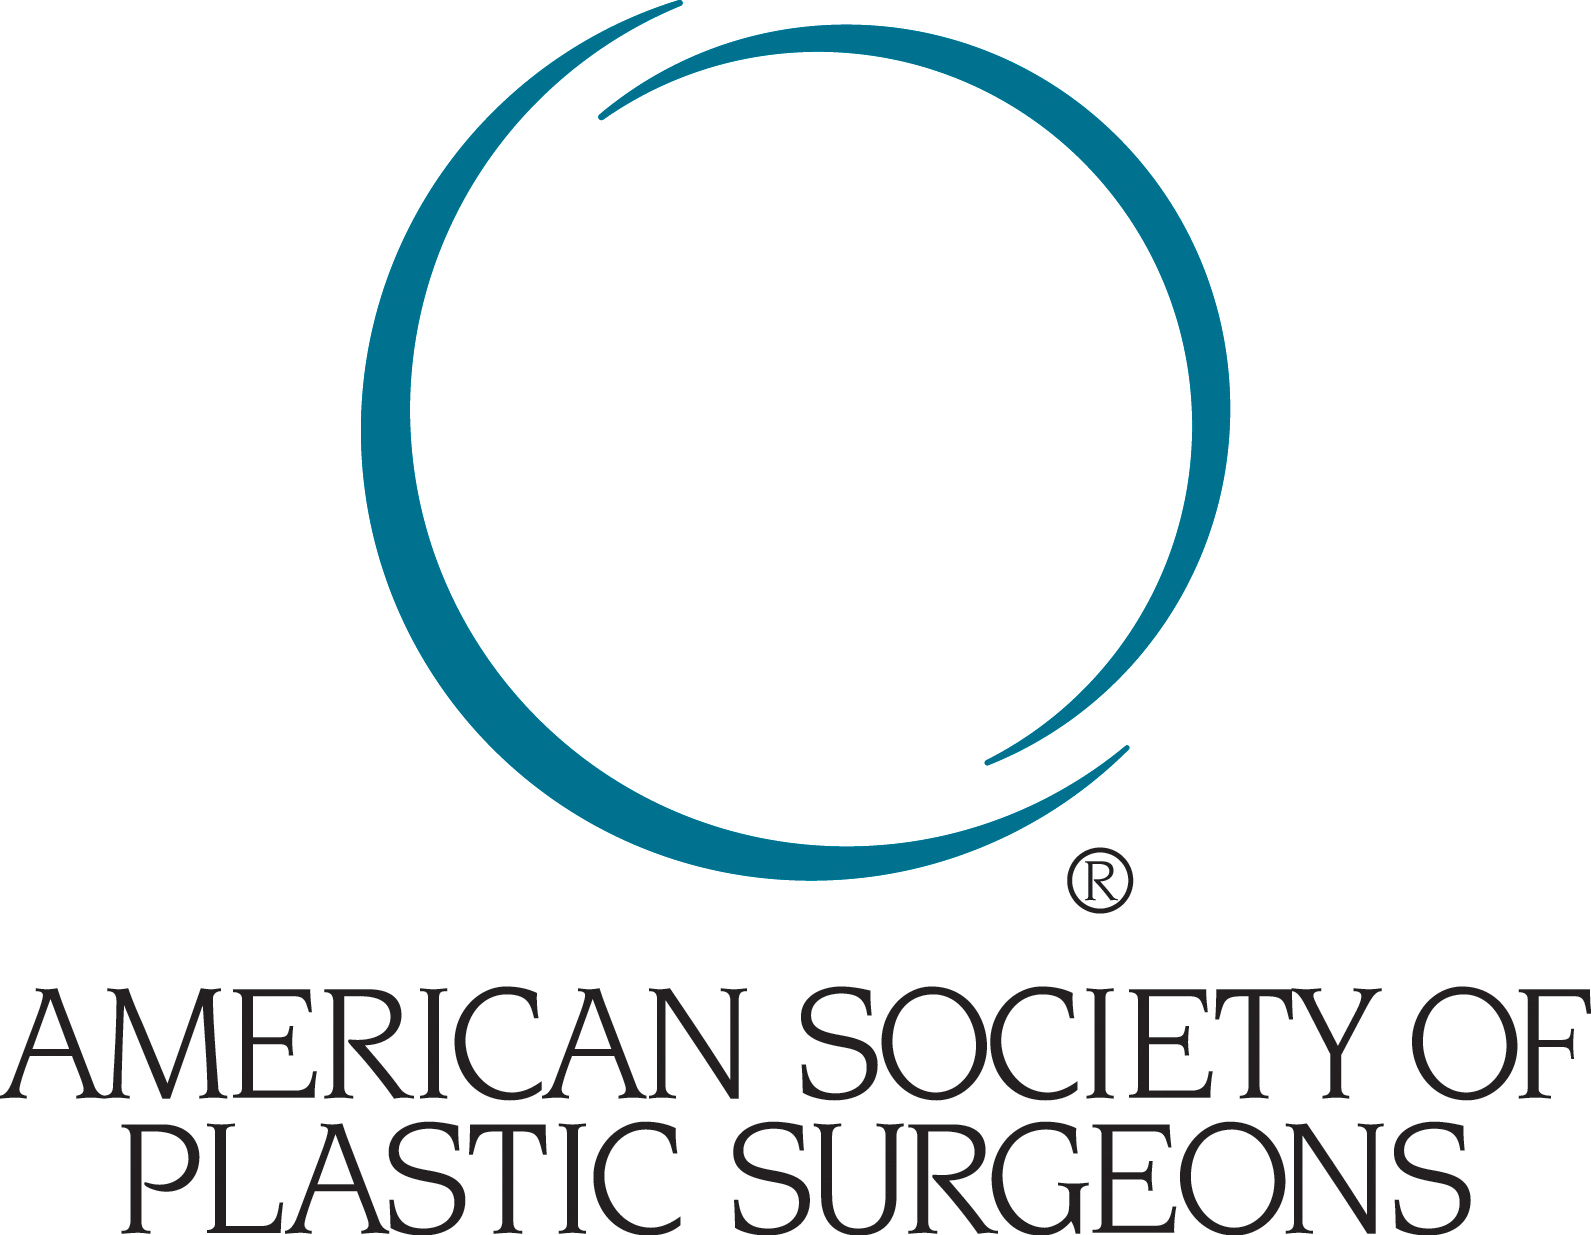 AMERICAN SOCIETY OF PLASTIC SURGEONS - DR. LESESNE HAS BEEN A CONTRIBUTING MEMBER OF THE AMERICAN SOCIETY OF PLASTIC SURGERY SINCE 1990.